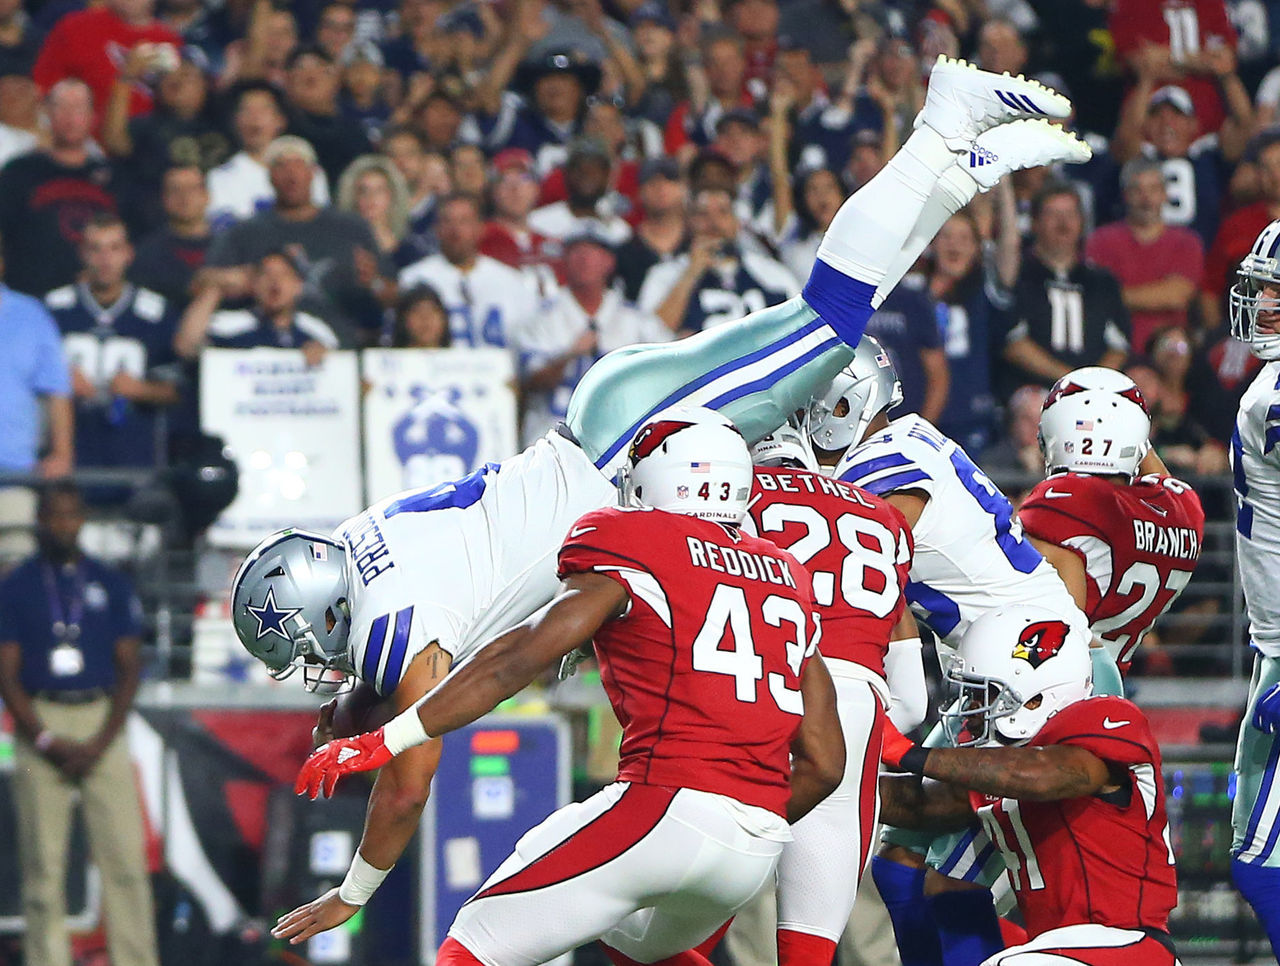 Cropped 2017 09 26t015502z 1701945921 nocid rtrmadp 3 nfl dallas cowboys at arizona cardinals